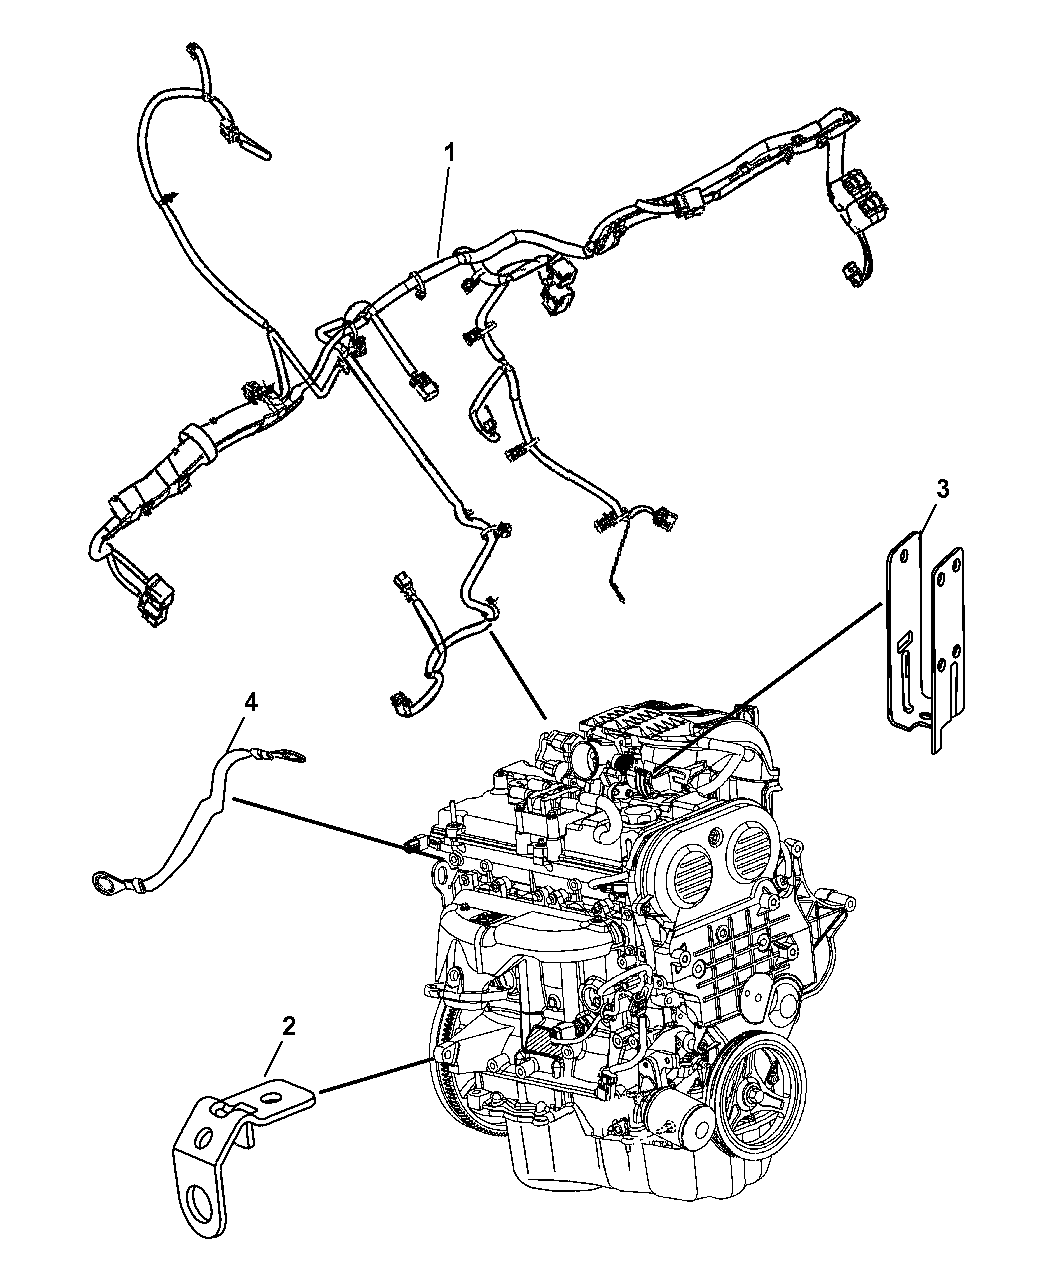 2006 Jeep Liberty Wiring Engine Related Parts Thumbnail 1